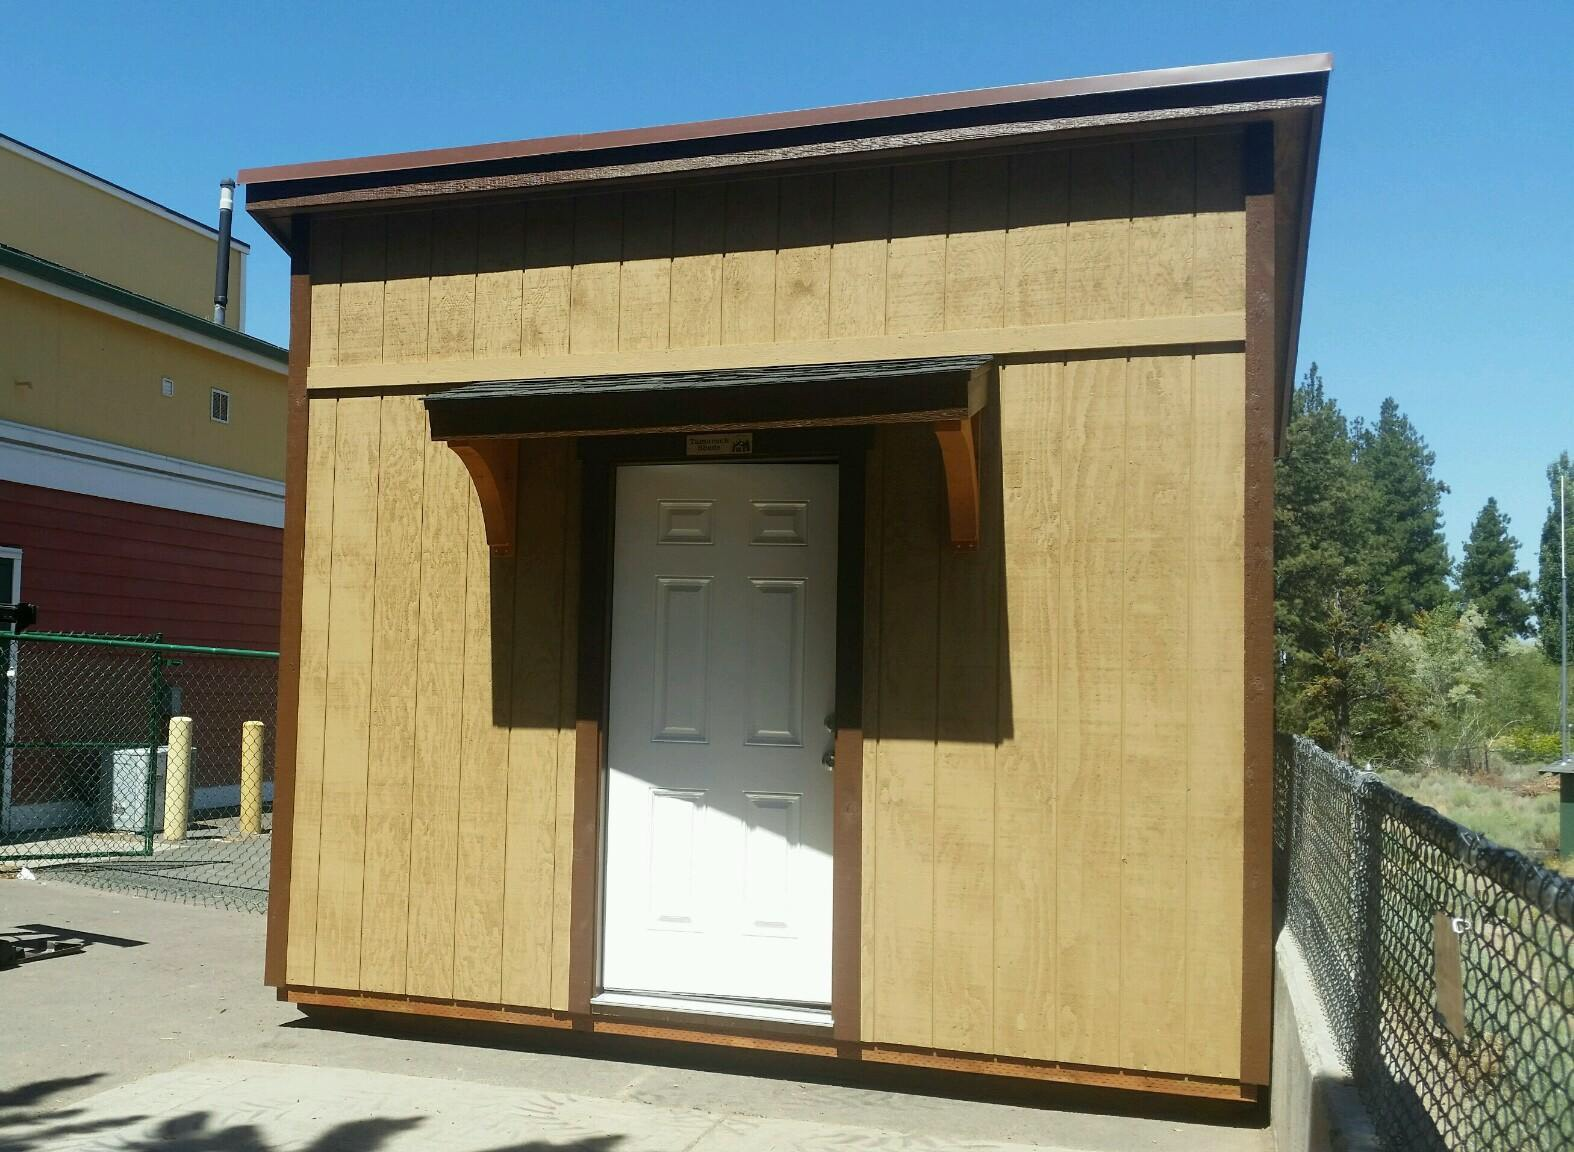 We built this cute shed with an eyebrow and curved corbels for Desert Sky Montessori Charter School in Bend.